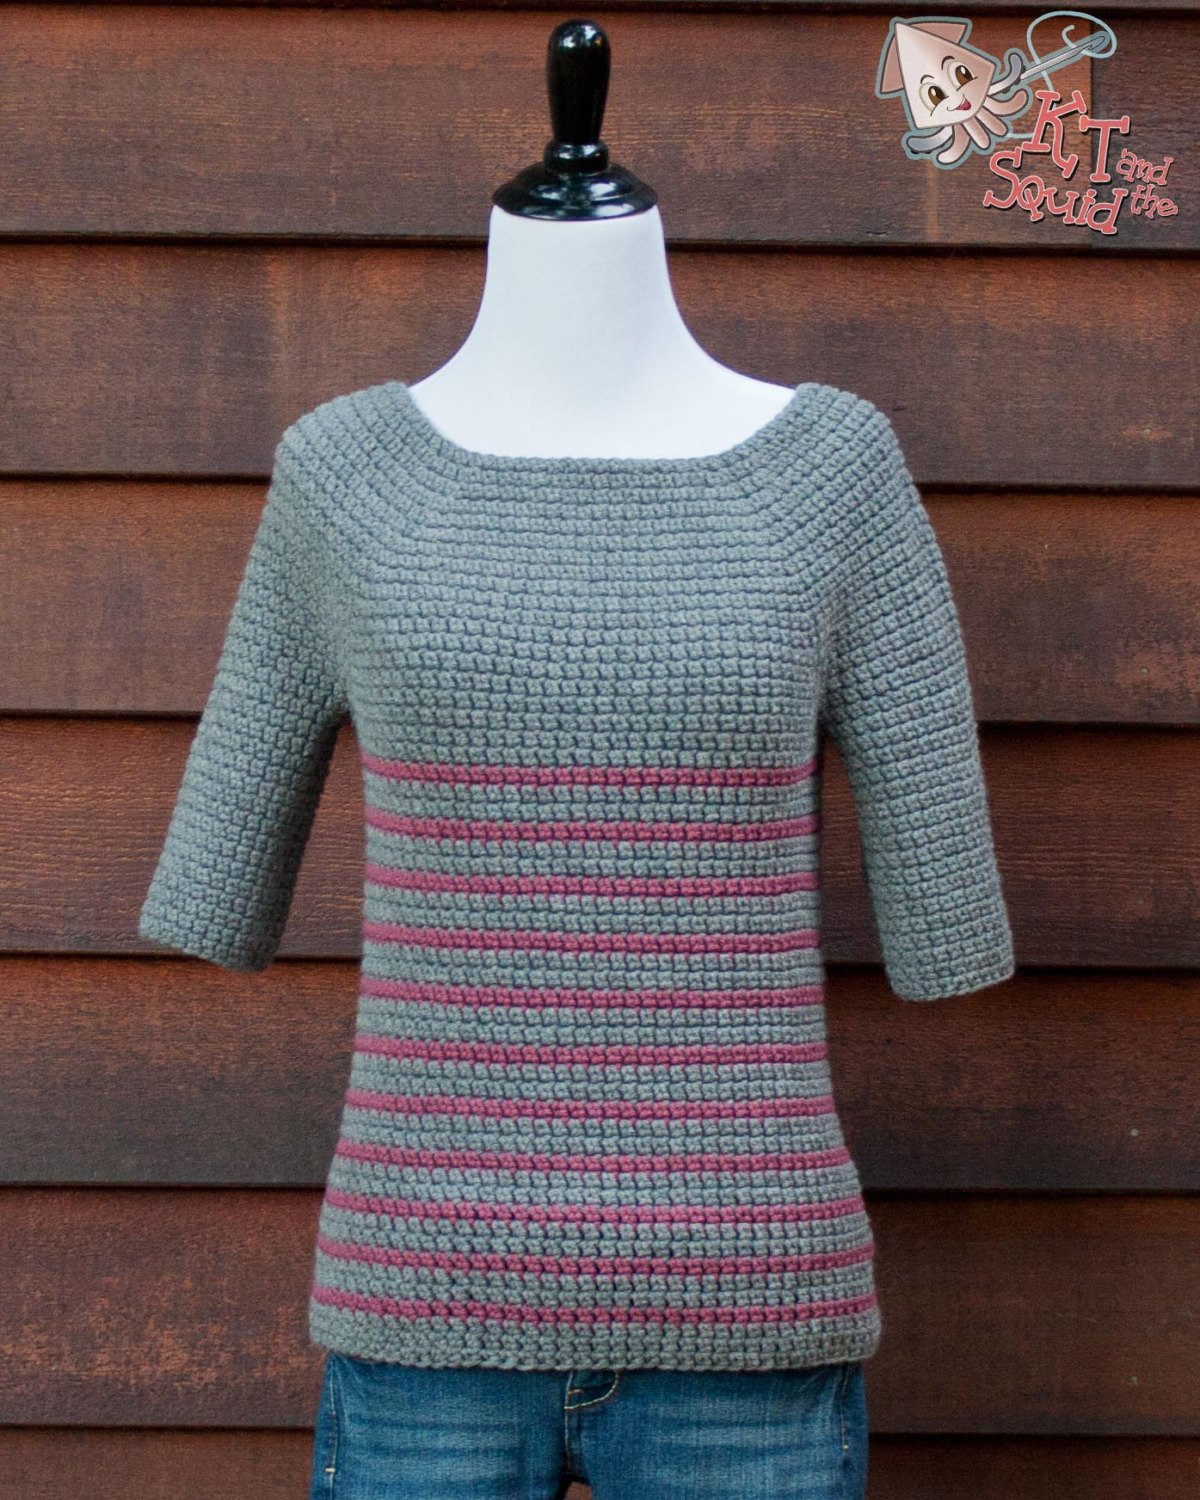 Crochet Pullover Sweater Awesome Crochet Sweater Pattern Women S Sweater Pattern Crochet Of Delightful 48 Pics Crochet Pullover Sweater